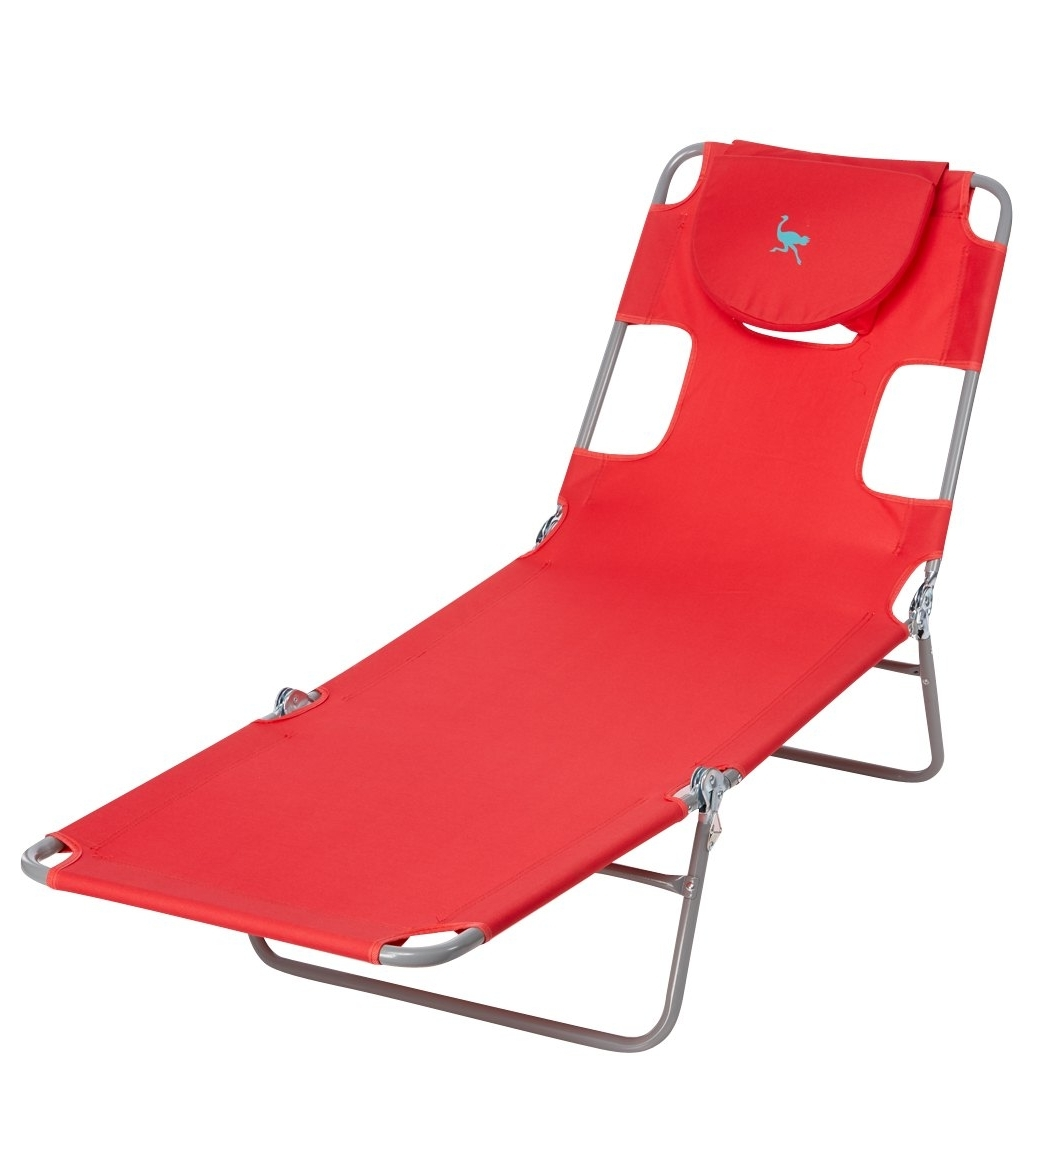 Ostrich Face Down Chaise Lounge At Swimoutlet – Free Shipping Intended For Latest Lounge Chaise Chair By Ostrich (View 6 of 15)